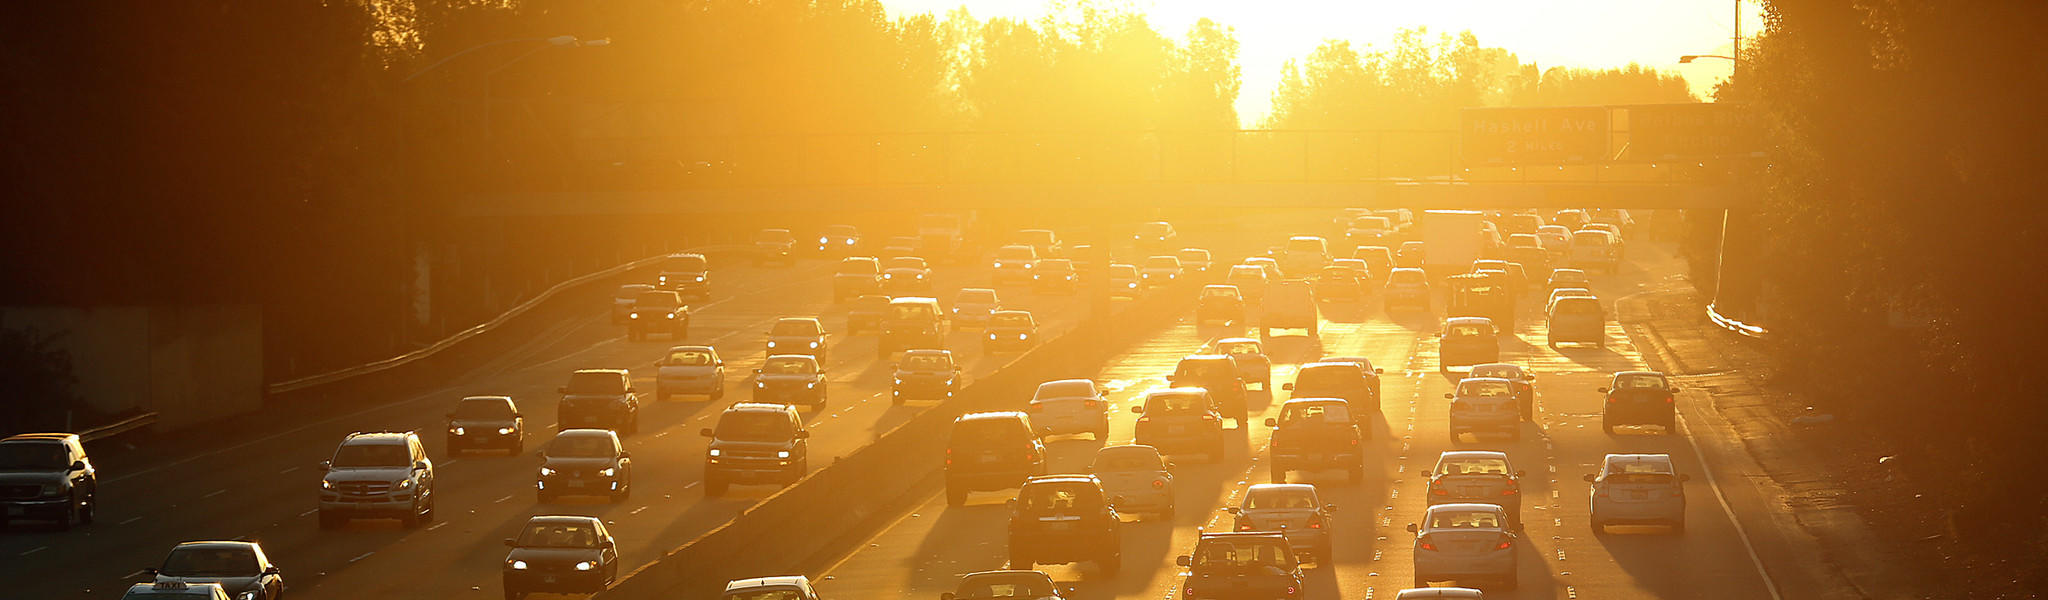 L A 's mayor wants to lower the city's temperature  These